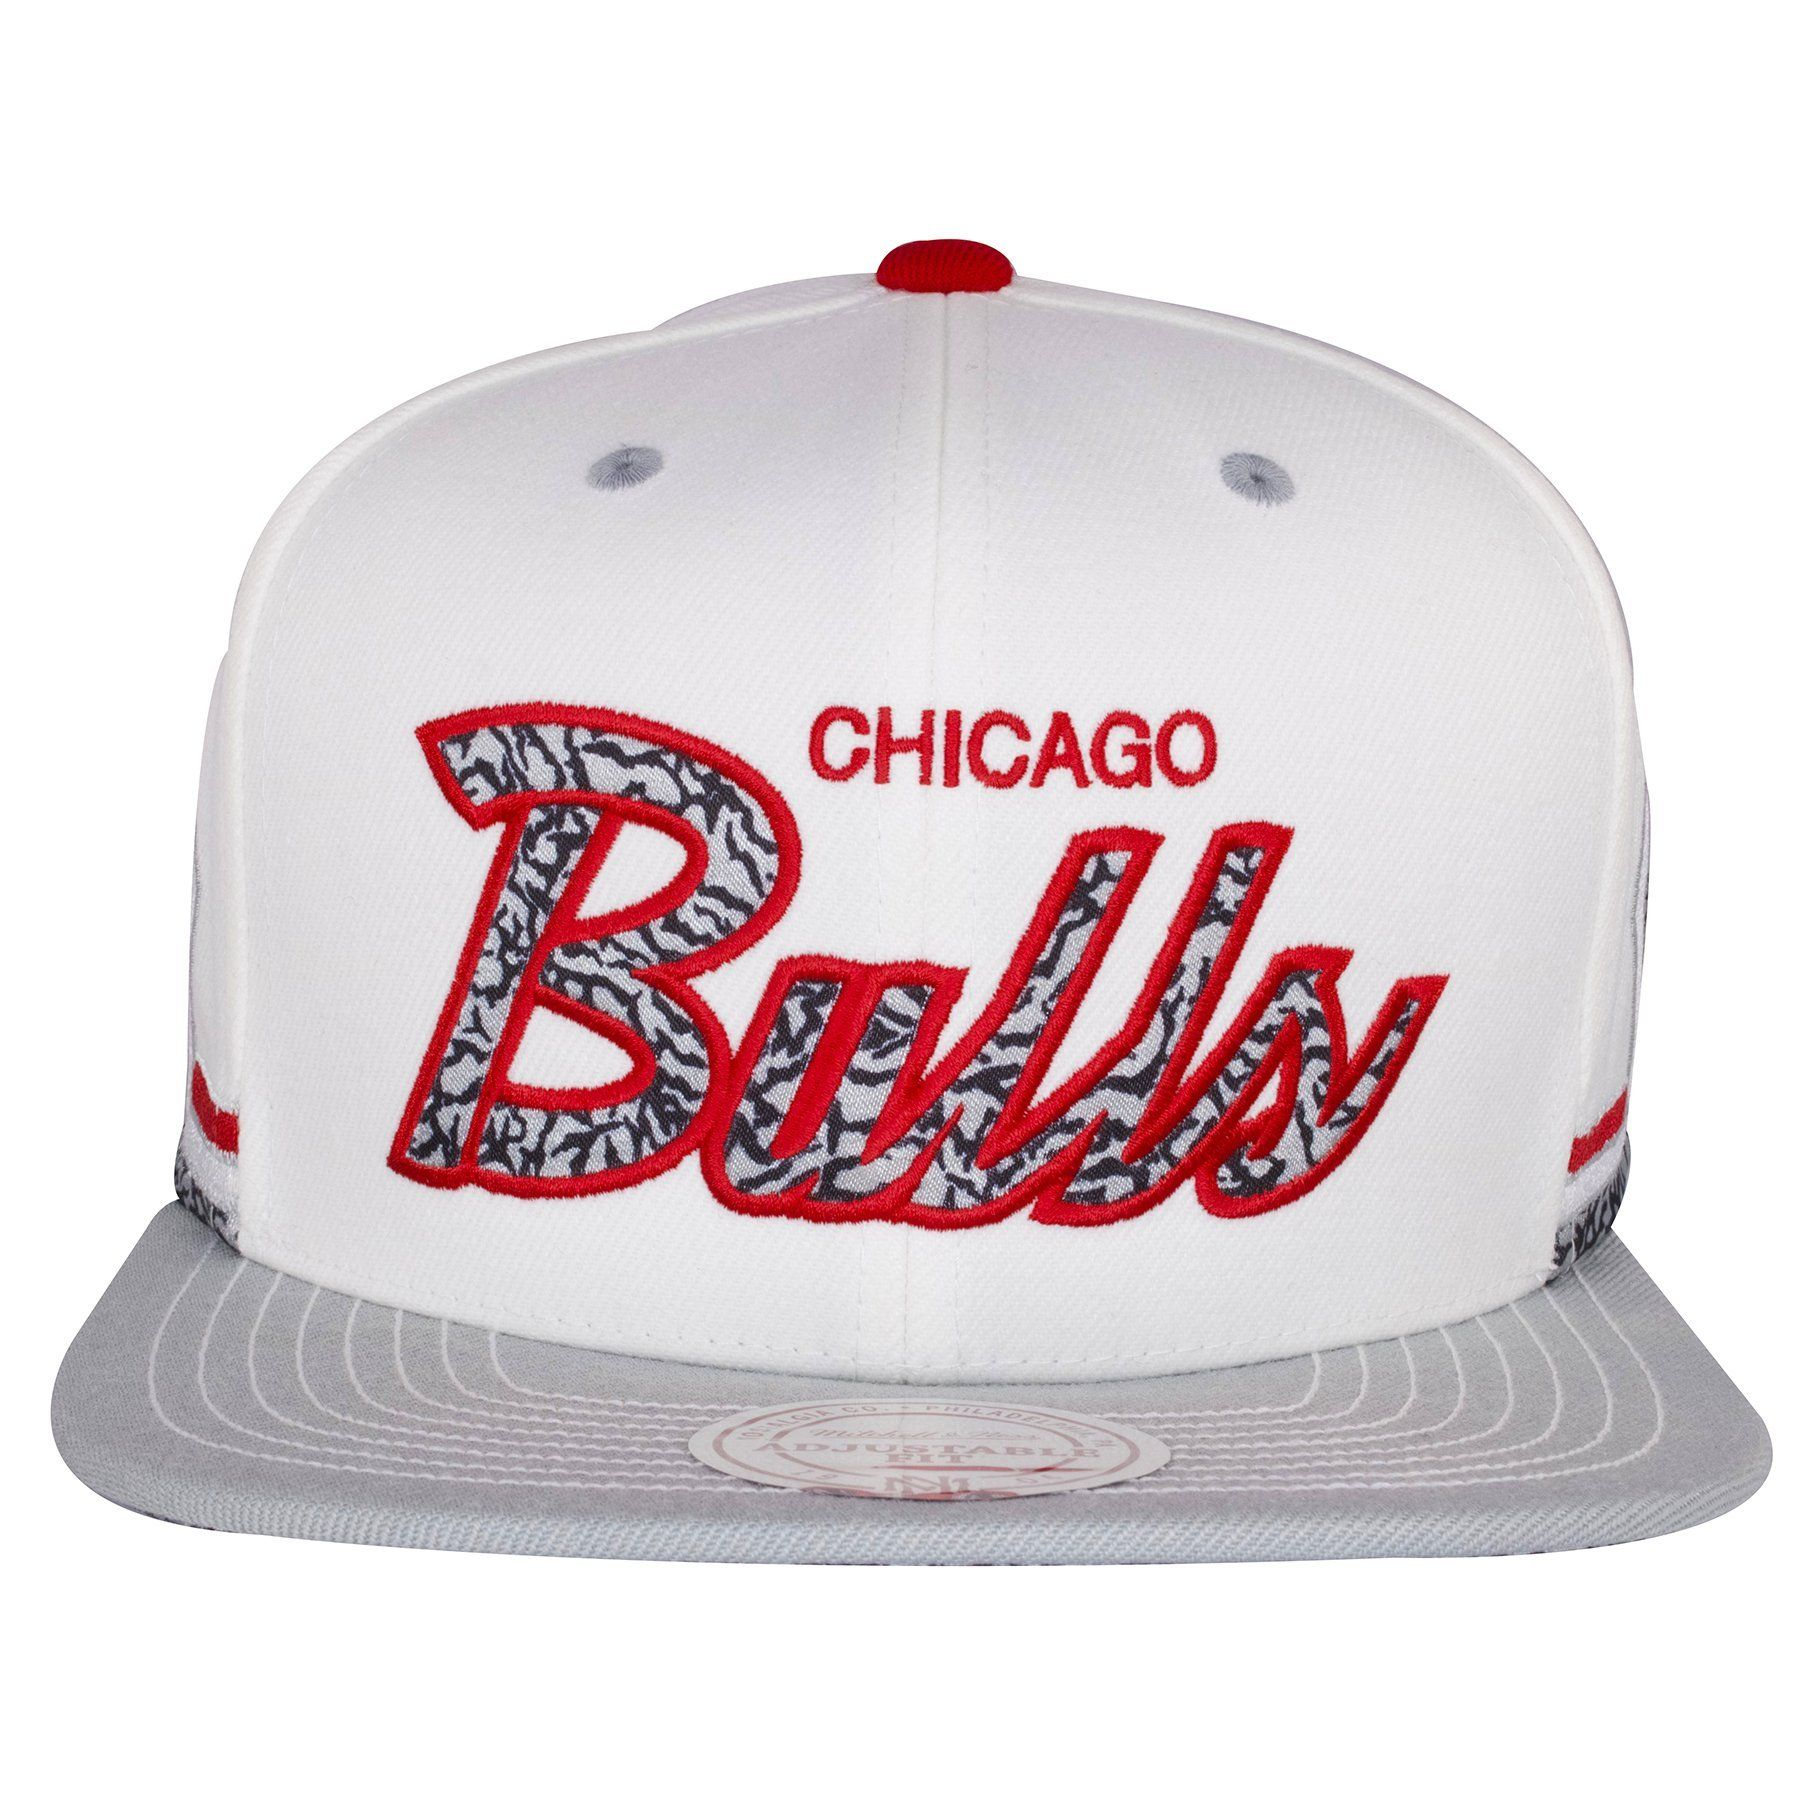 info for 9460c 99a61 Match the Air Jordan 3 Katrinas with this dope Chicago Bull white on cement snapback  hat! Custom sneaker matching snapback hat!!